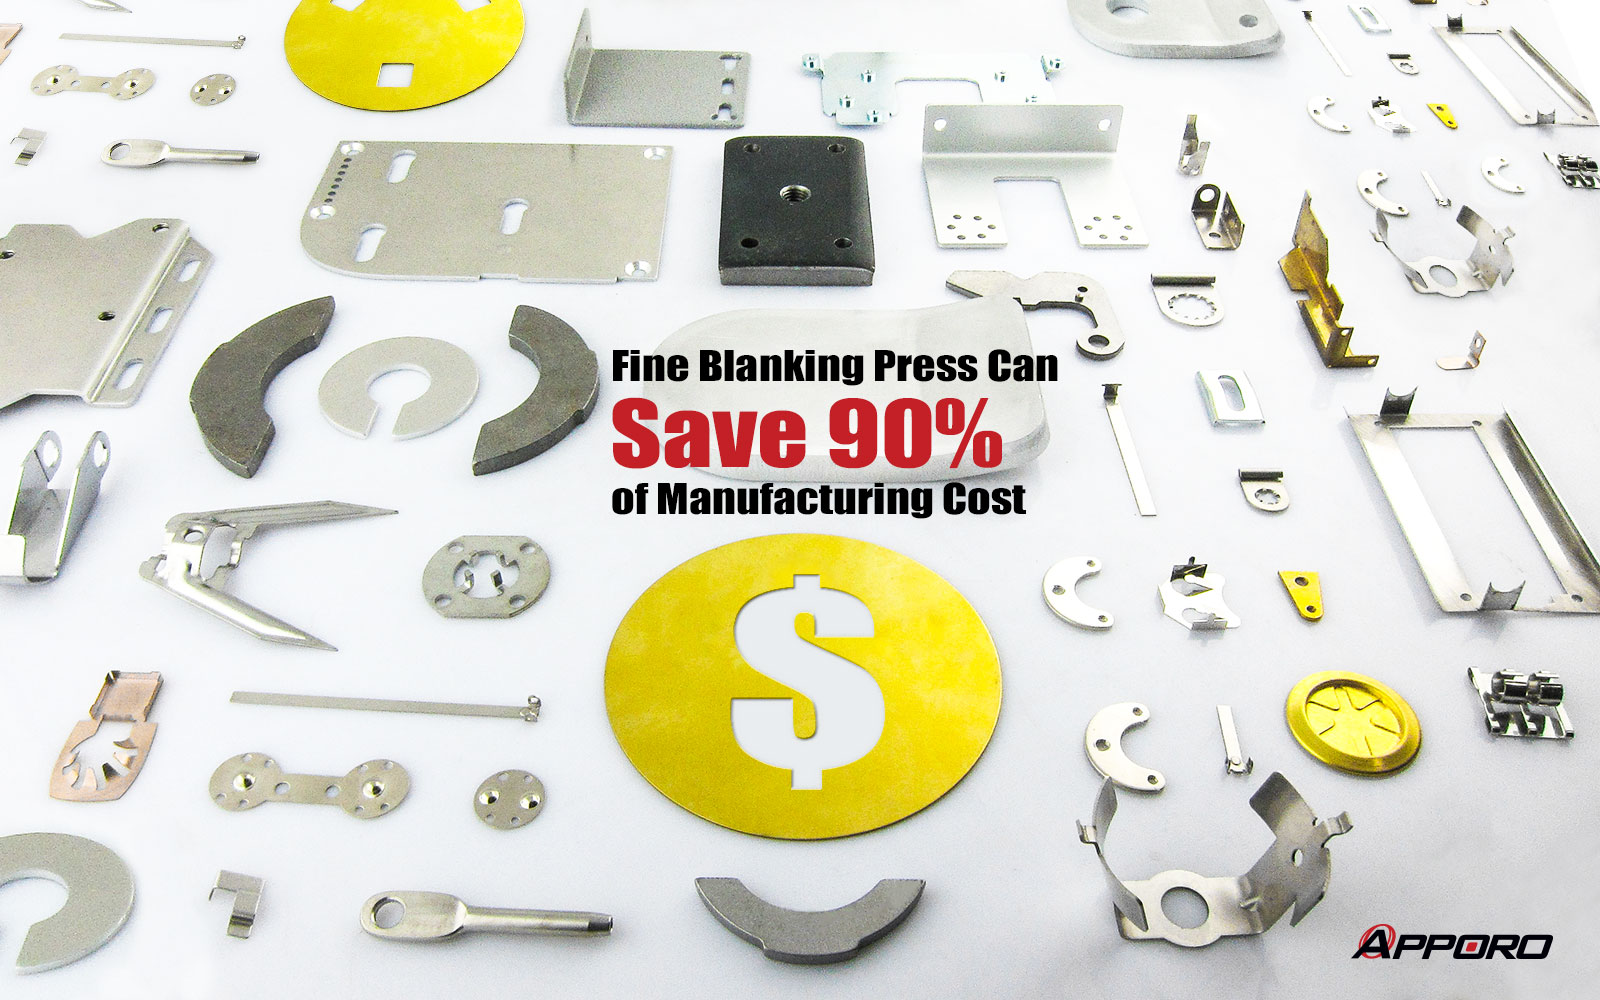 Fine Blanking Press Can Save 90% of Manufacturing Cost